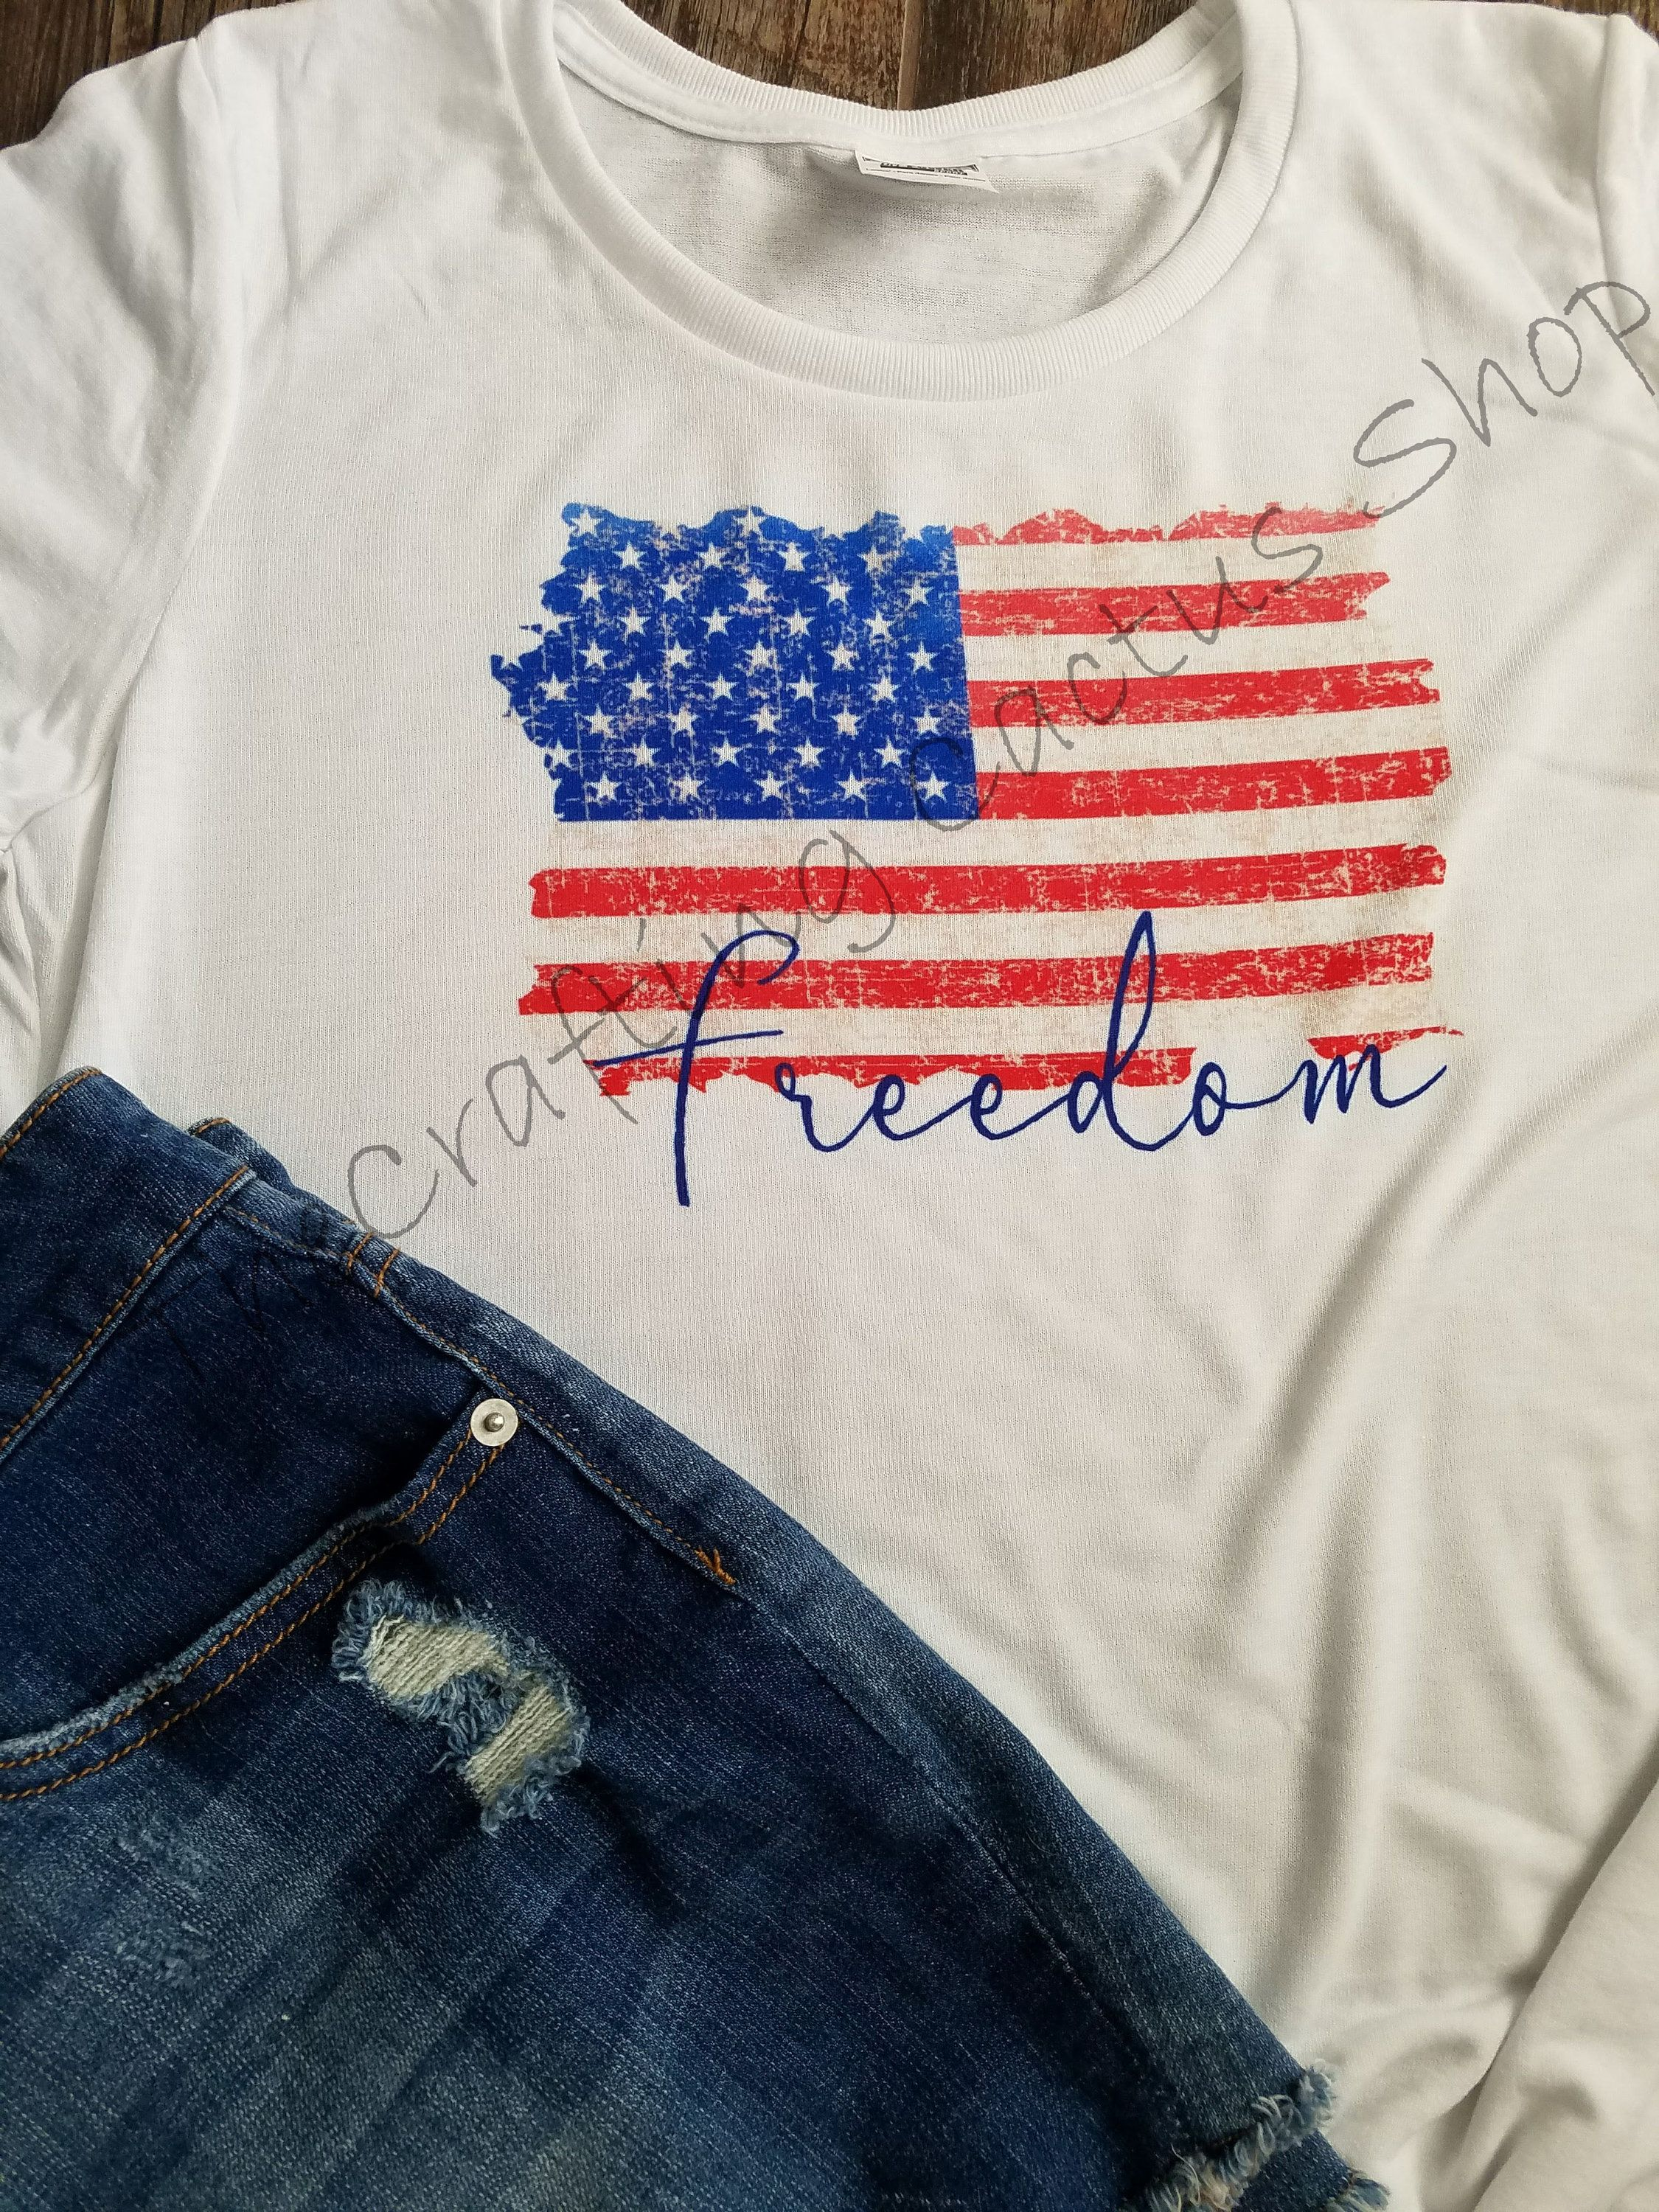 Distressed American Flag T Shirt Patriotic T Shirt 4th Of July Tee Fourth Of July Sublimation Fourth Of July Shirts Patriotic Tshirts American Flag Tshirt